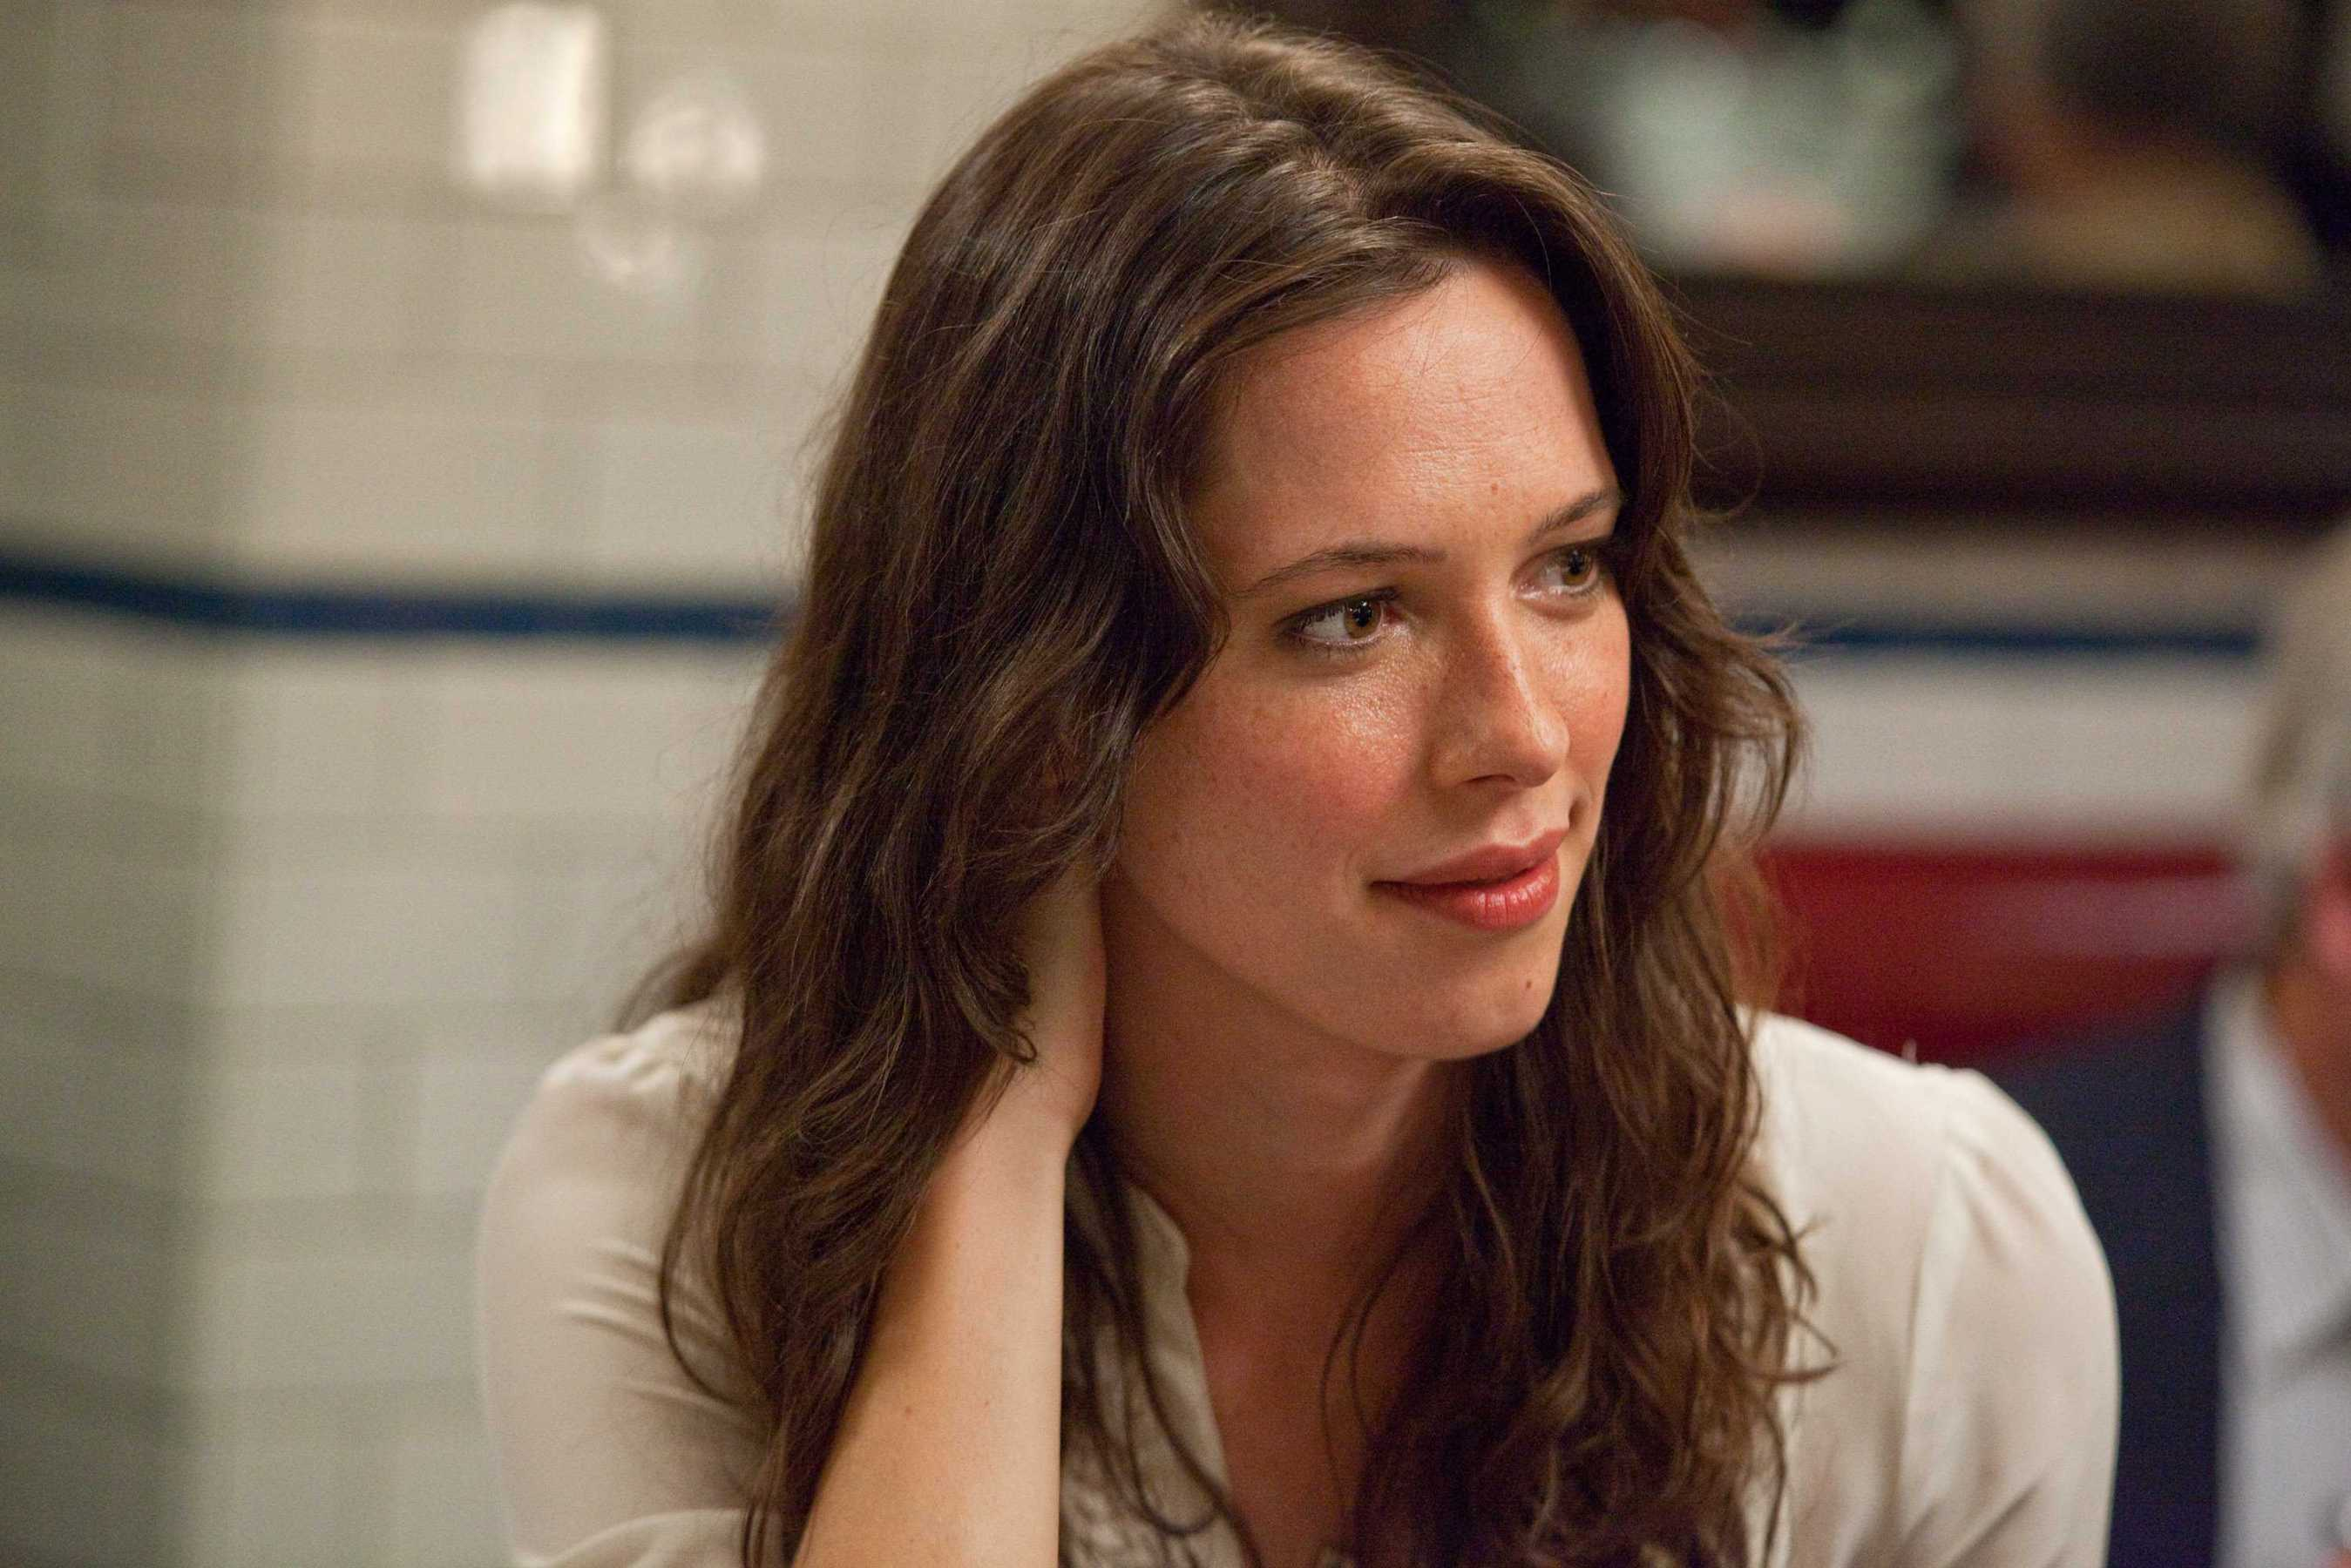 Rebecca Hall Wallpapers High Resolution and Quality Download